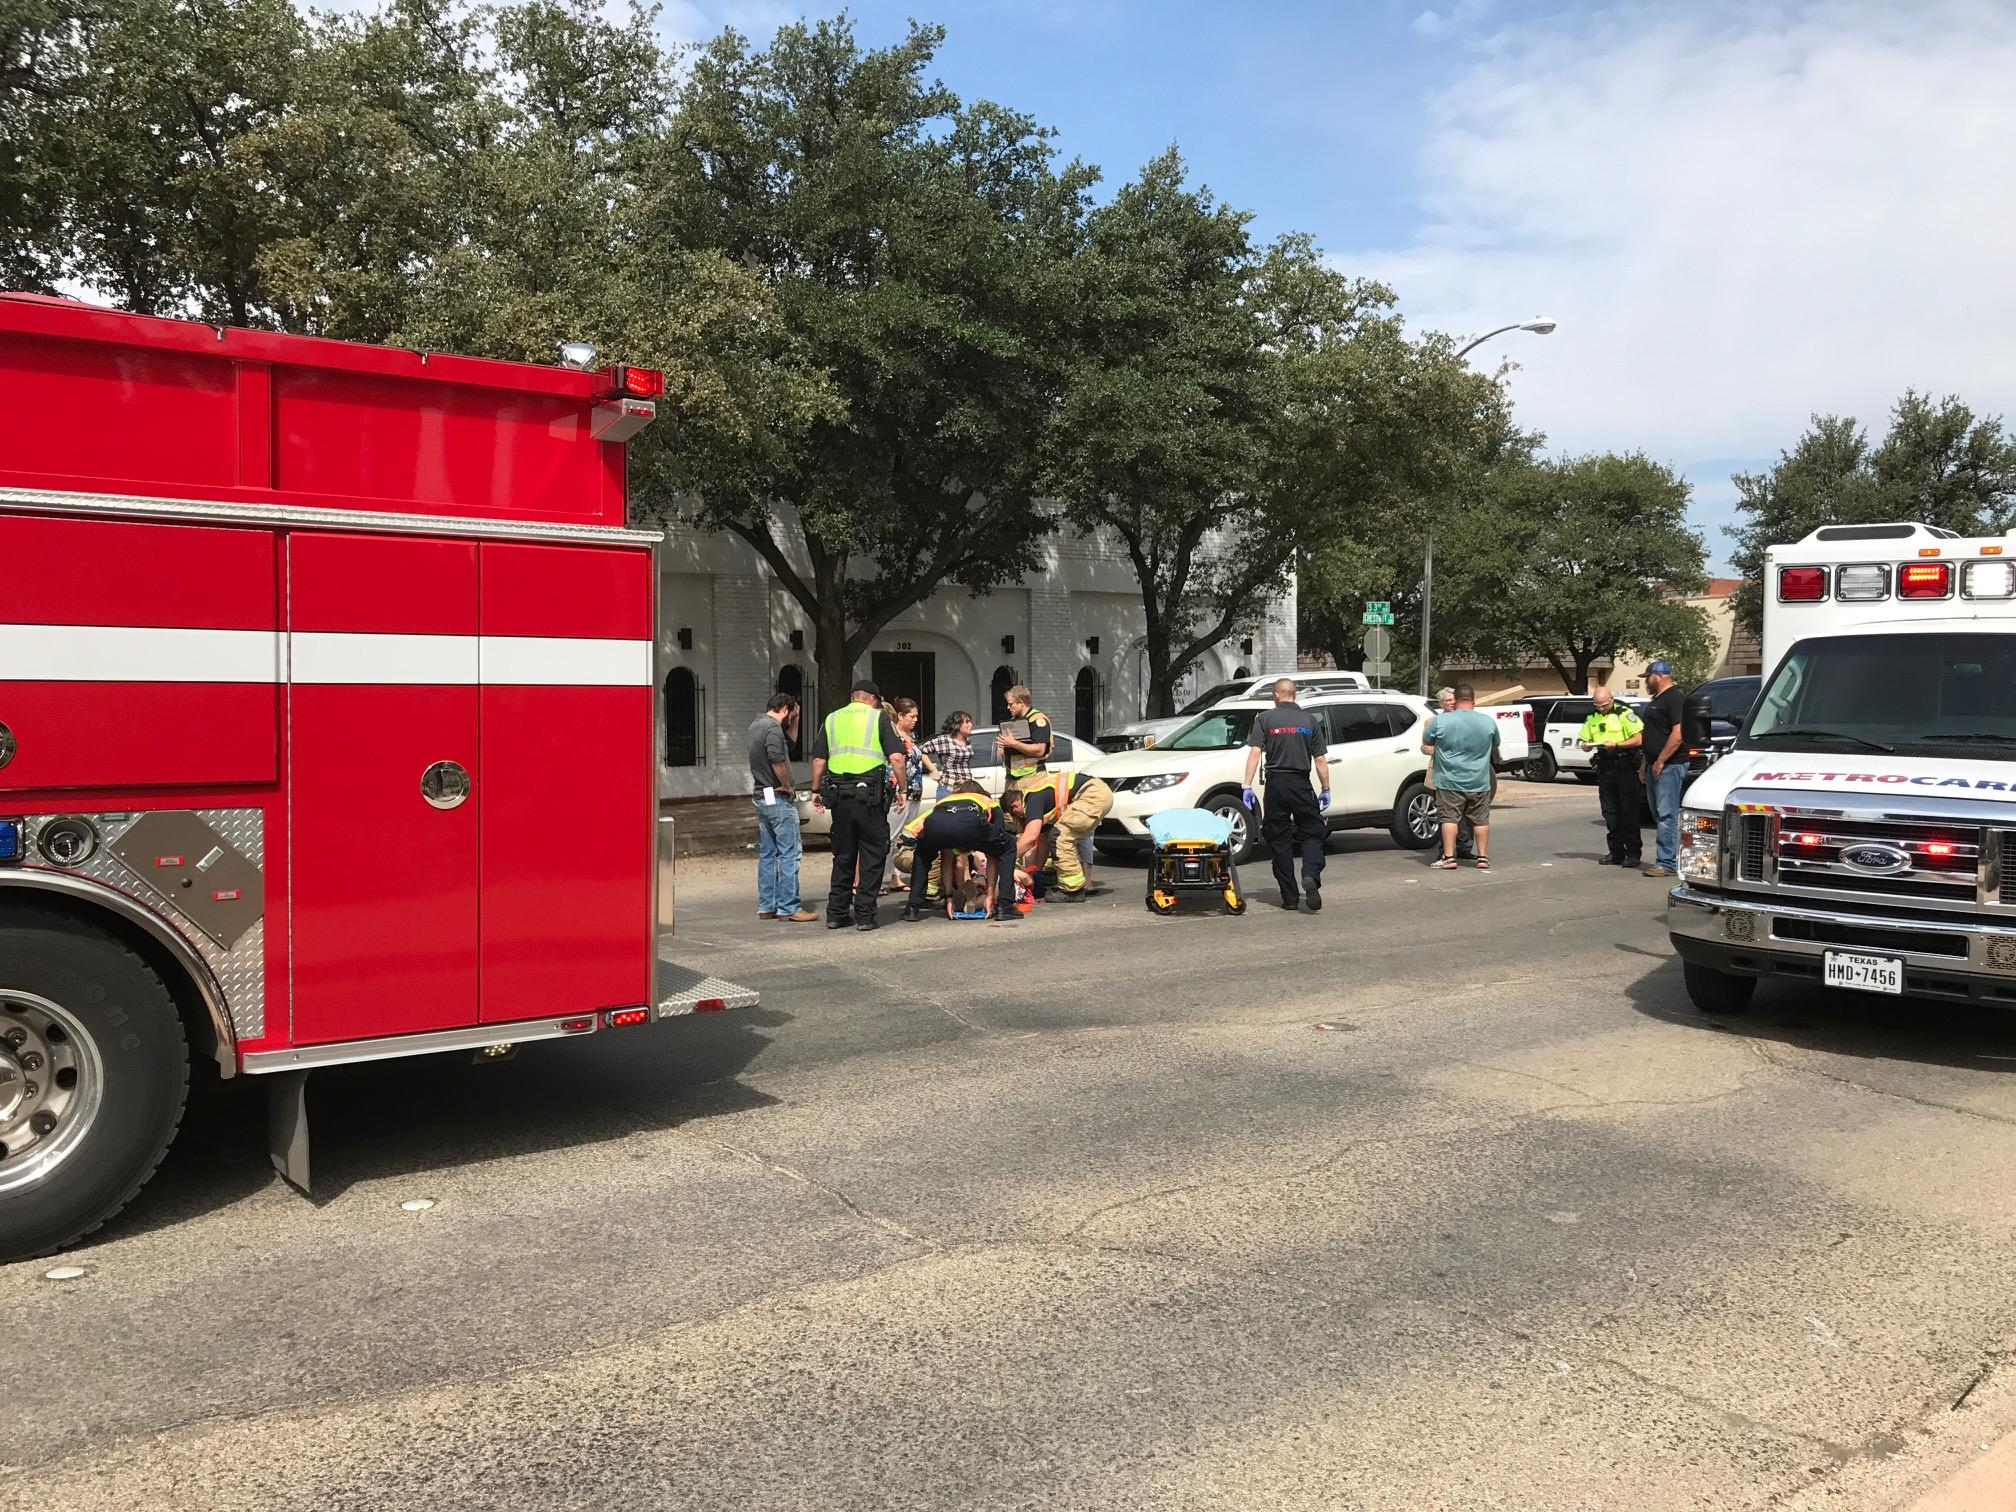 Photos by Scott Martin/KTXS News:  A 32-year-old woman crossing Chestnut Street near the Taylor County Courthouse was struck by a vehicle before noon Tuesday and had to be taken to Hendrick Medical Center. She was able to speak with paramedics and had what appeared to be non-life threatening injuries, according to Abilene police.